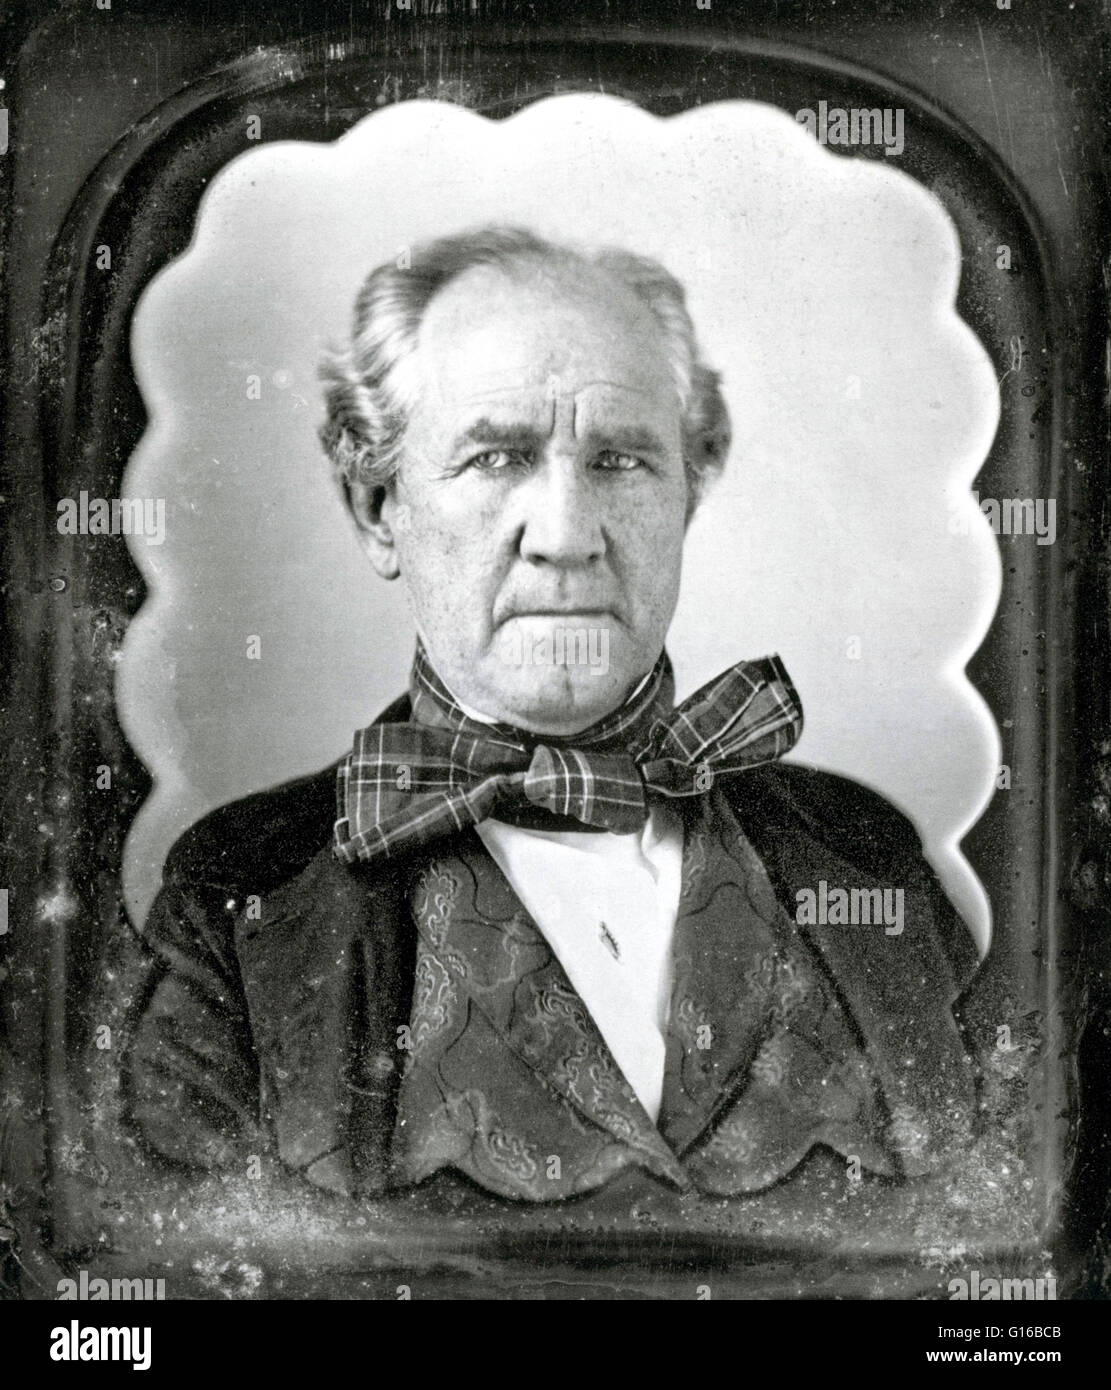 Photo non datée de Houston. Samuel 'Sam' Houston (2 mars 1793 - 26 juillet 1863) était un homme Photo Stock